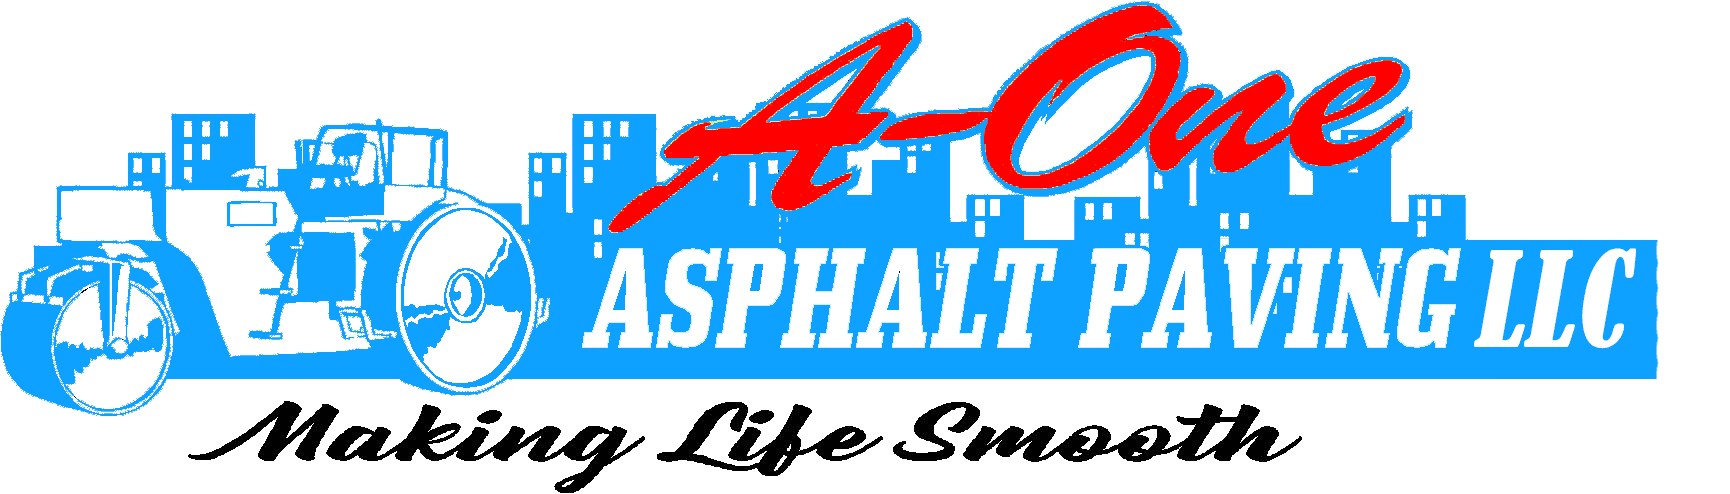 A-One Asphalt Paving LLC logo